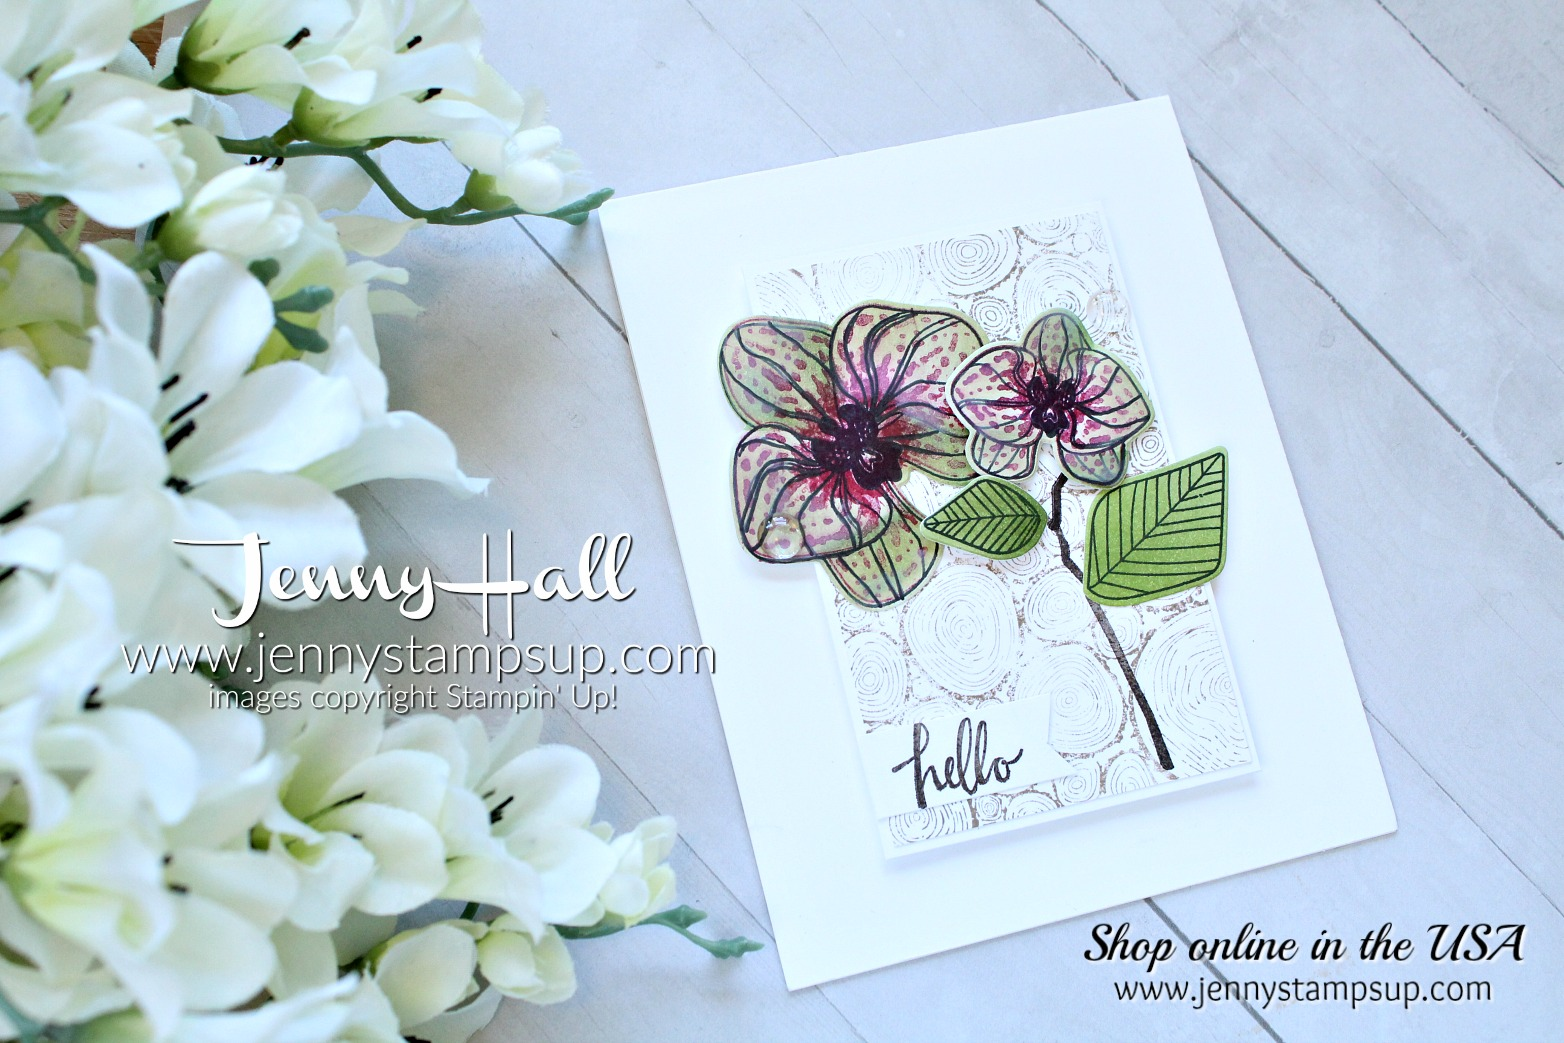 April Ink & Inspiration Blog Hop card created by Jenny Hall at www.jennystampsup.com for #cardmaking #climbingorchid #orchidstamp #stampinup #jennyhall #jennyhalldesign #jennystampsup #videotutorial #youtuber #stamping #orchidcard #cascards #cleanandsimplecards #stamparatus